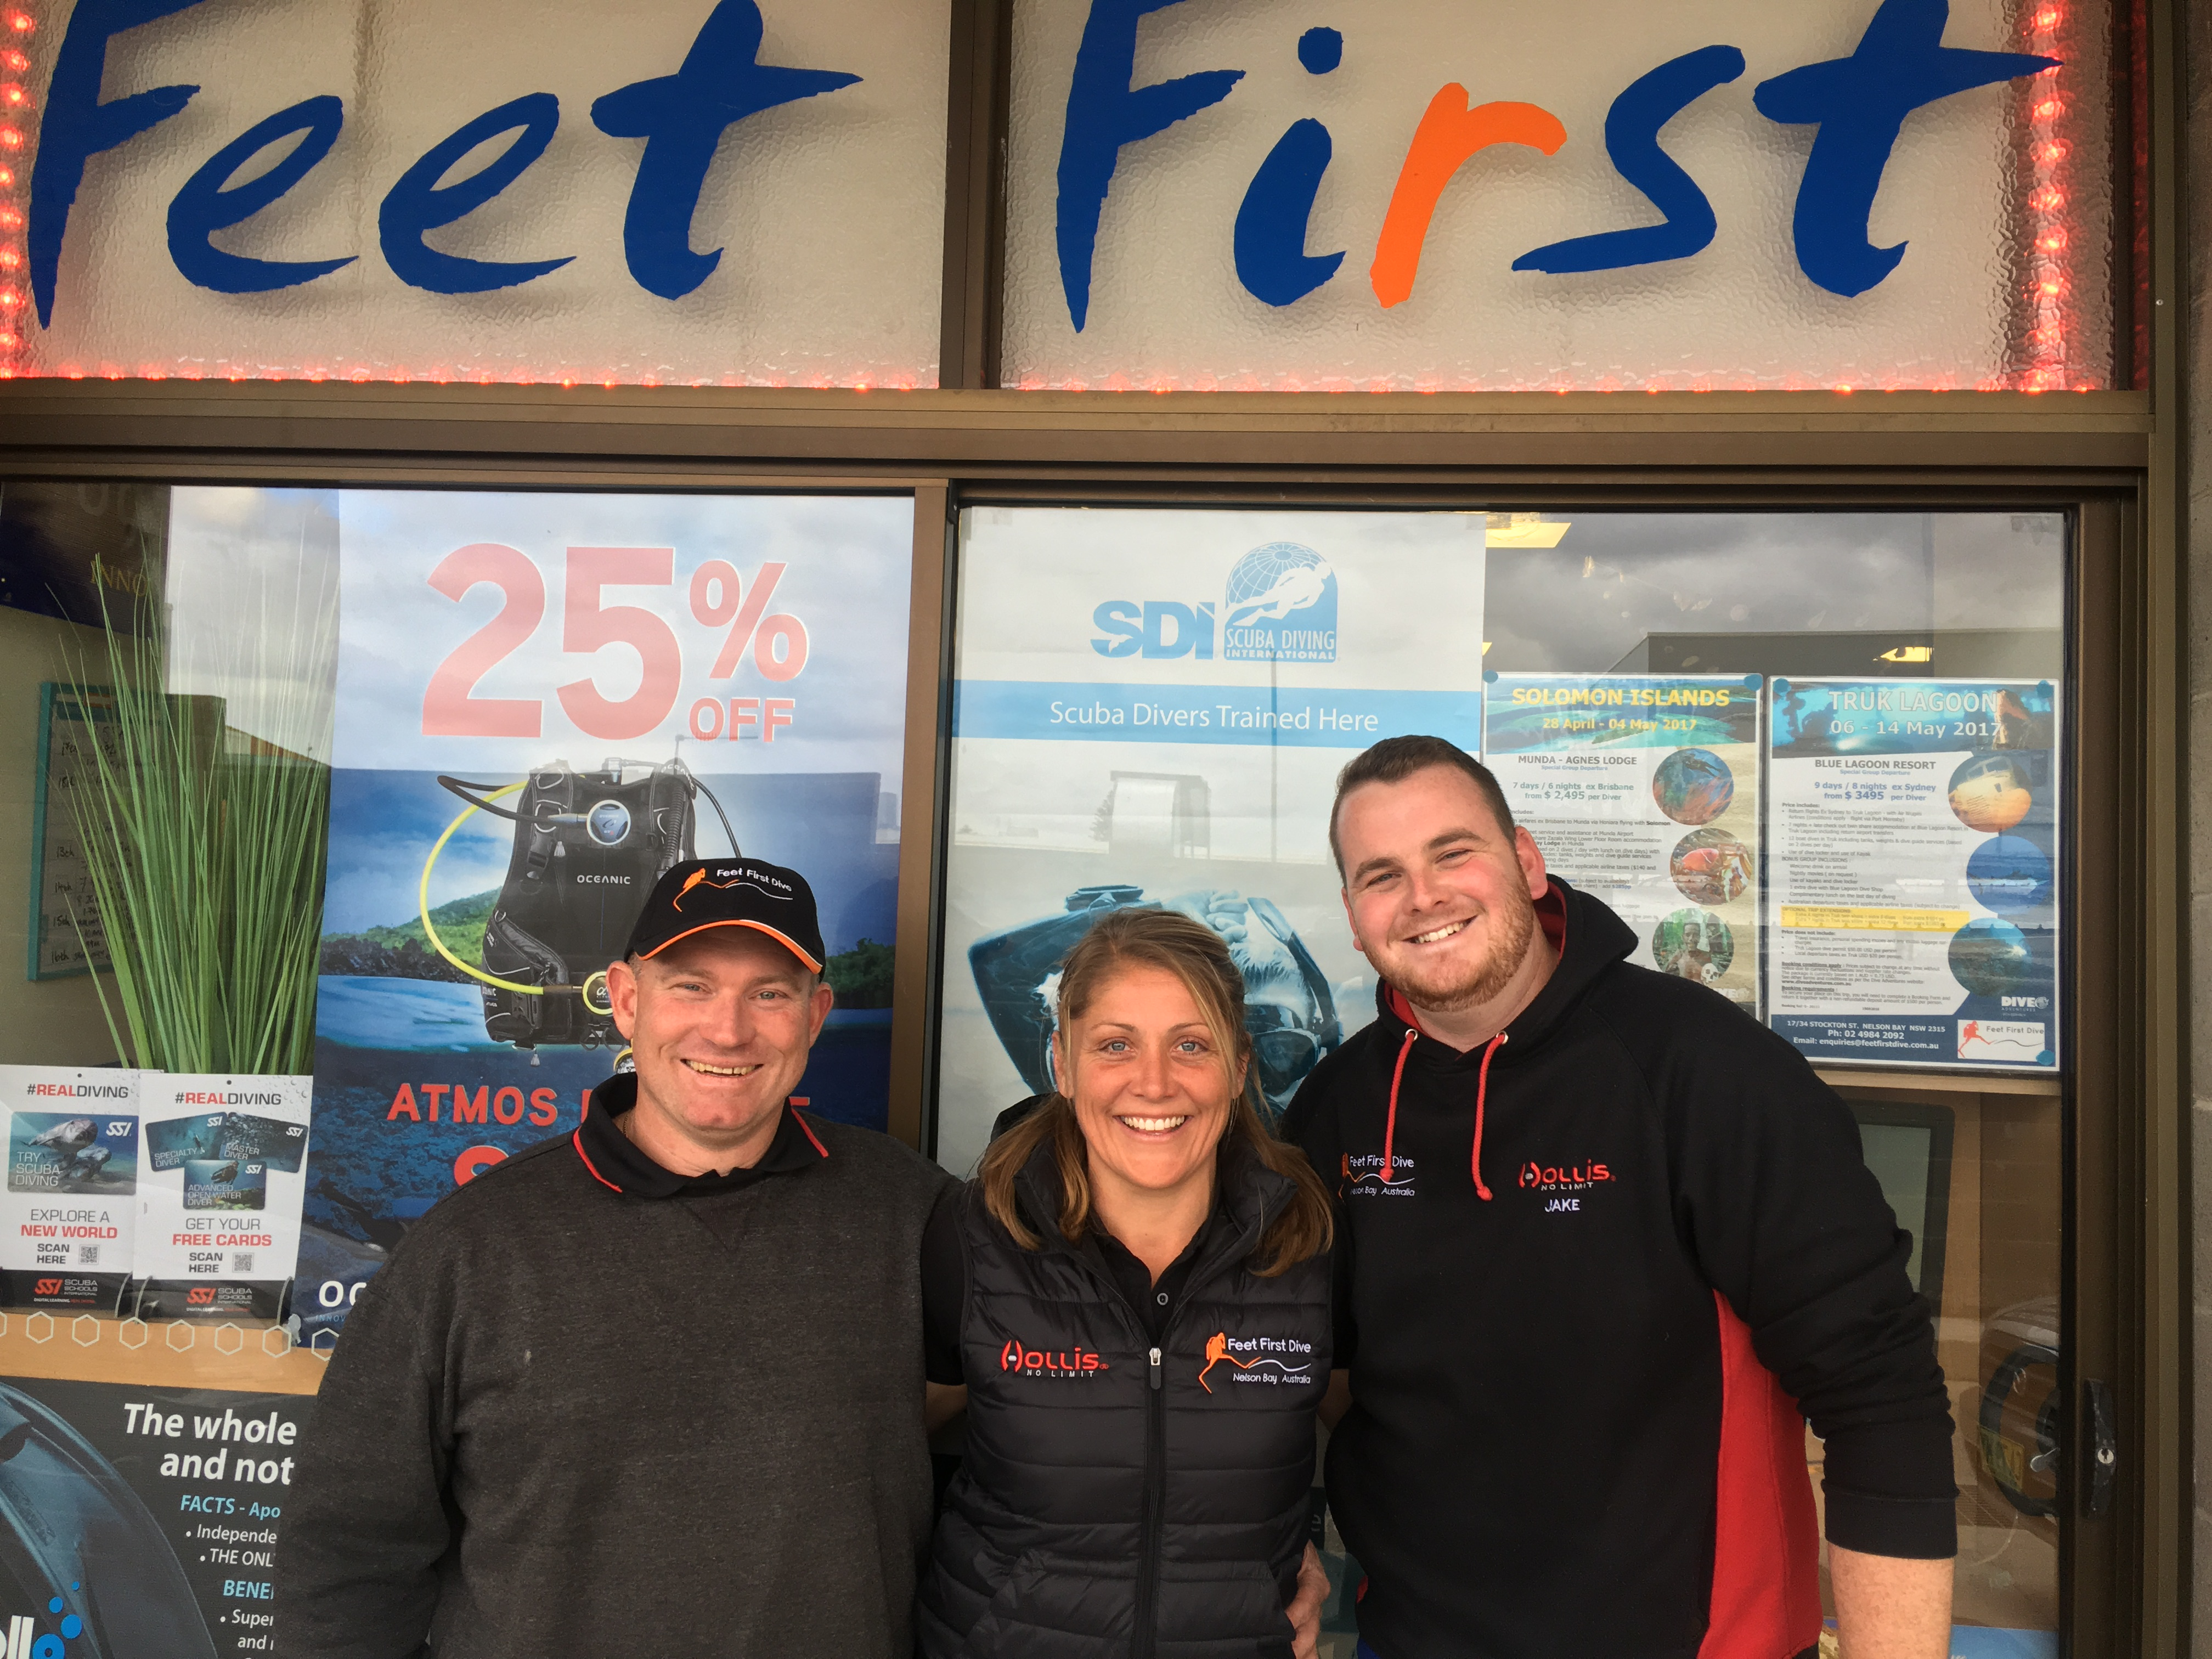 The team at Feet First Dive Nelson Bay, Phillip Campey, Trudie Blackett and Jake Harden are protesting the Aquaculture Farms location.